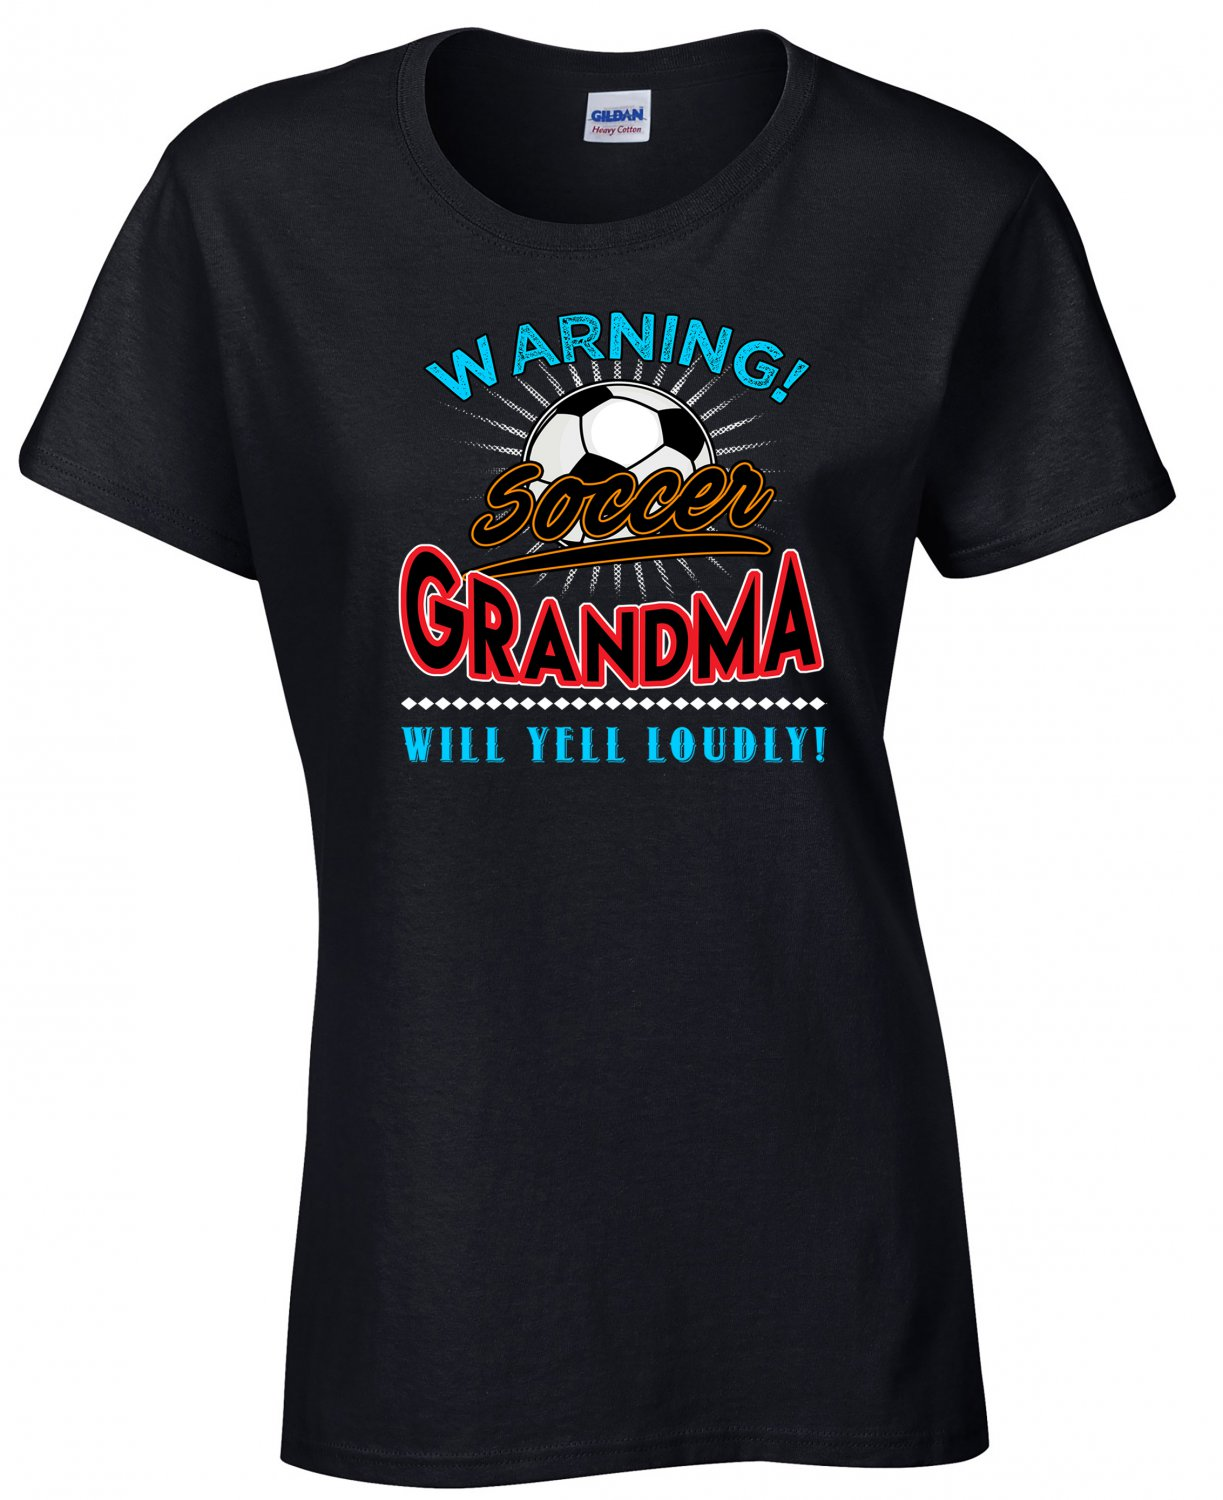 Soccer Grandma, Warning Soccer Grandma Will Yell Loudly Shirt